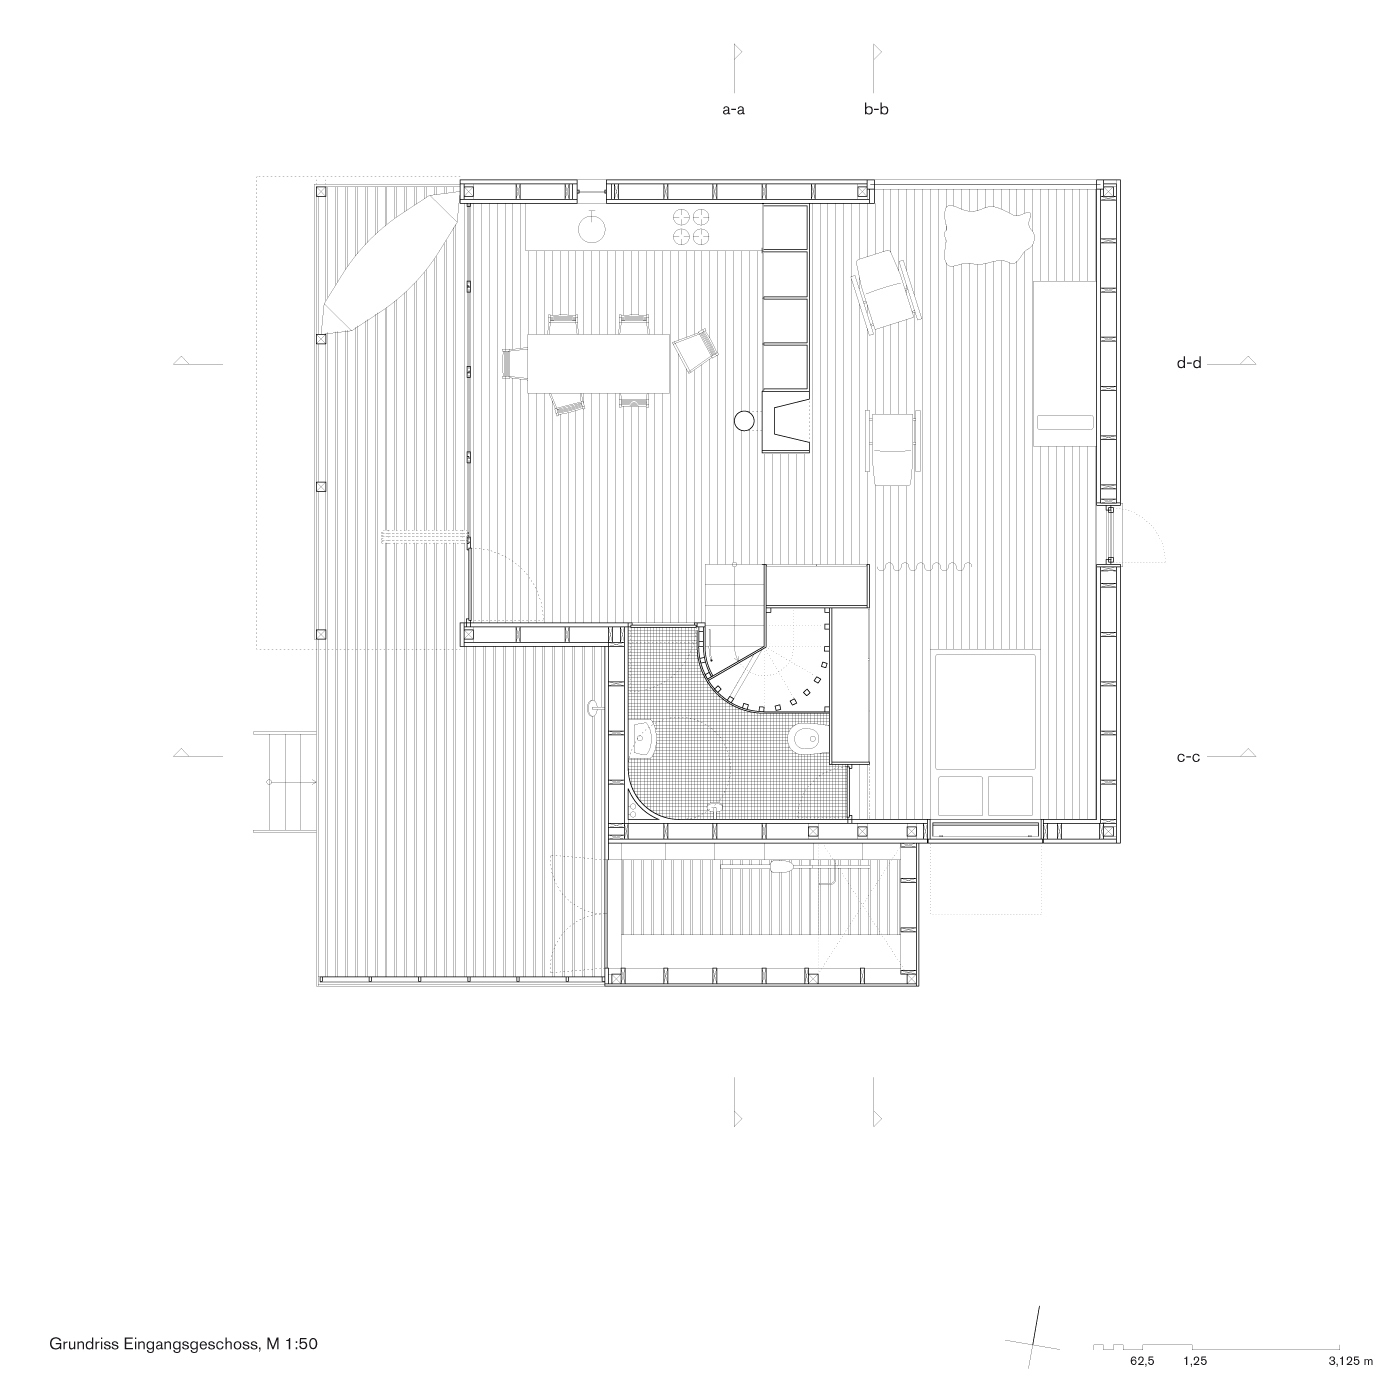 Groung plan entrance floor